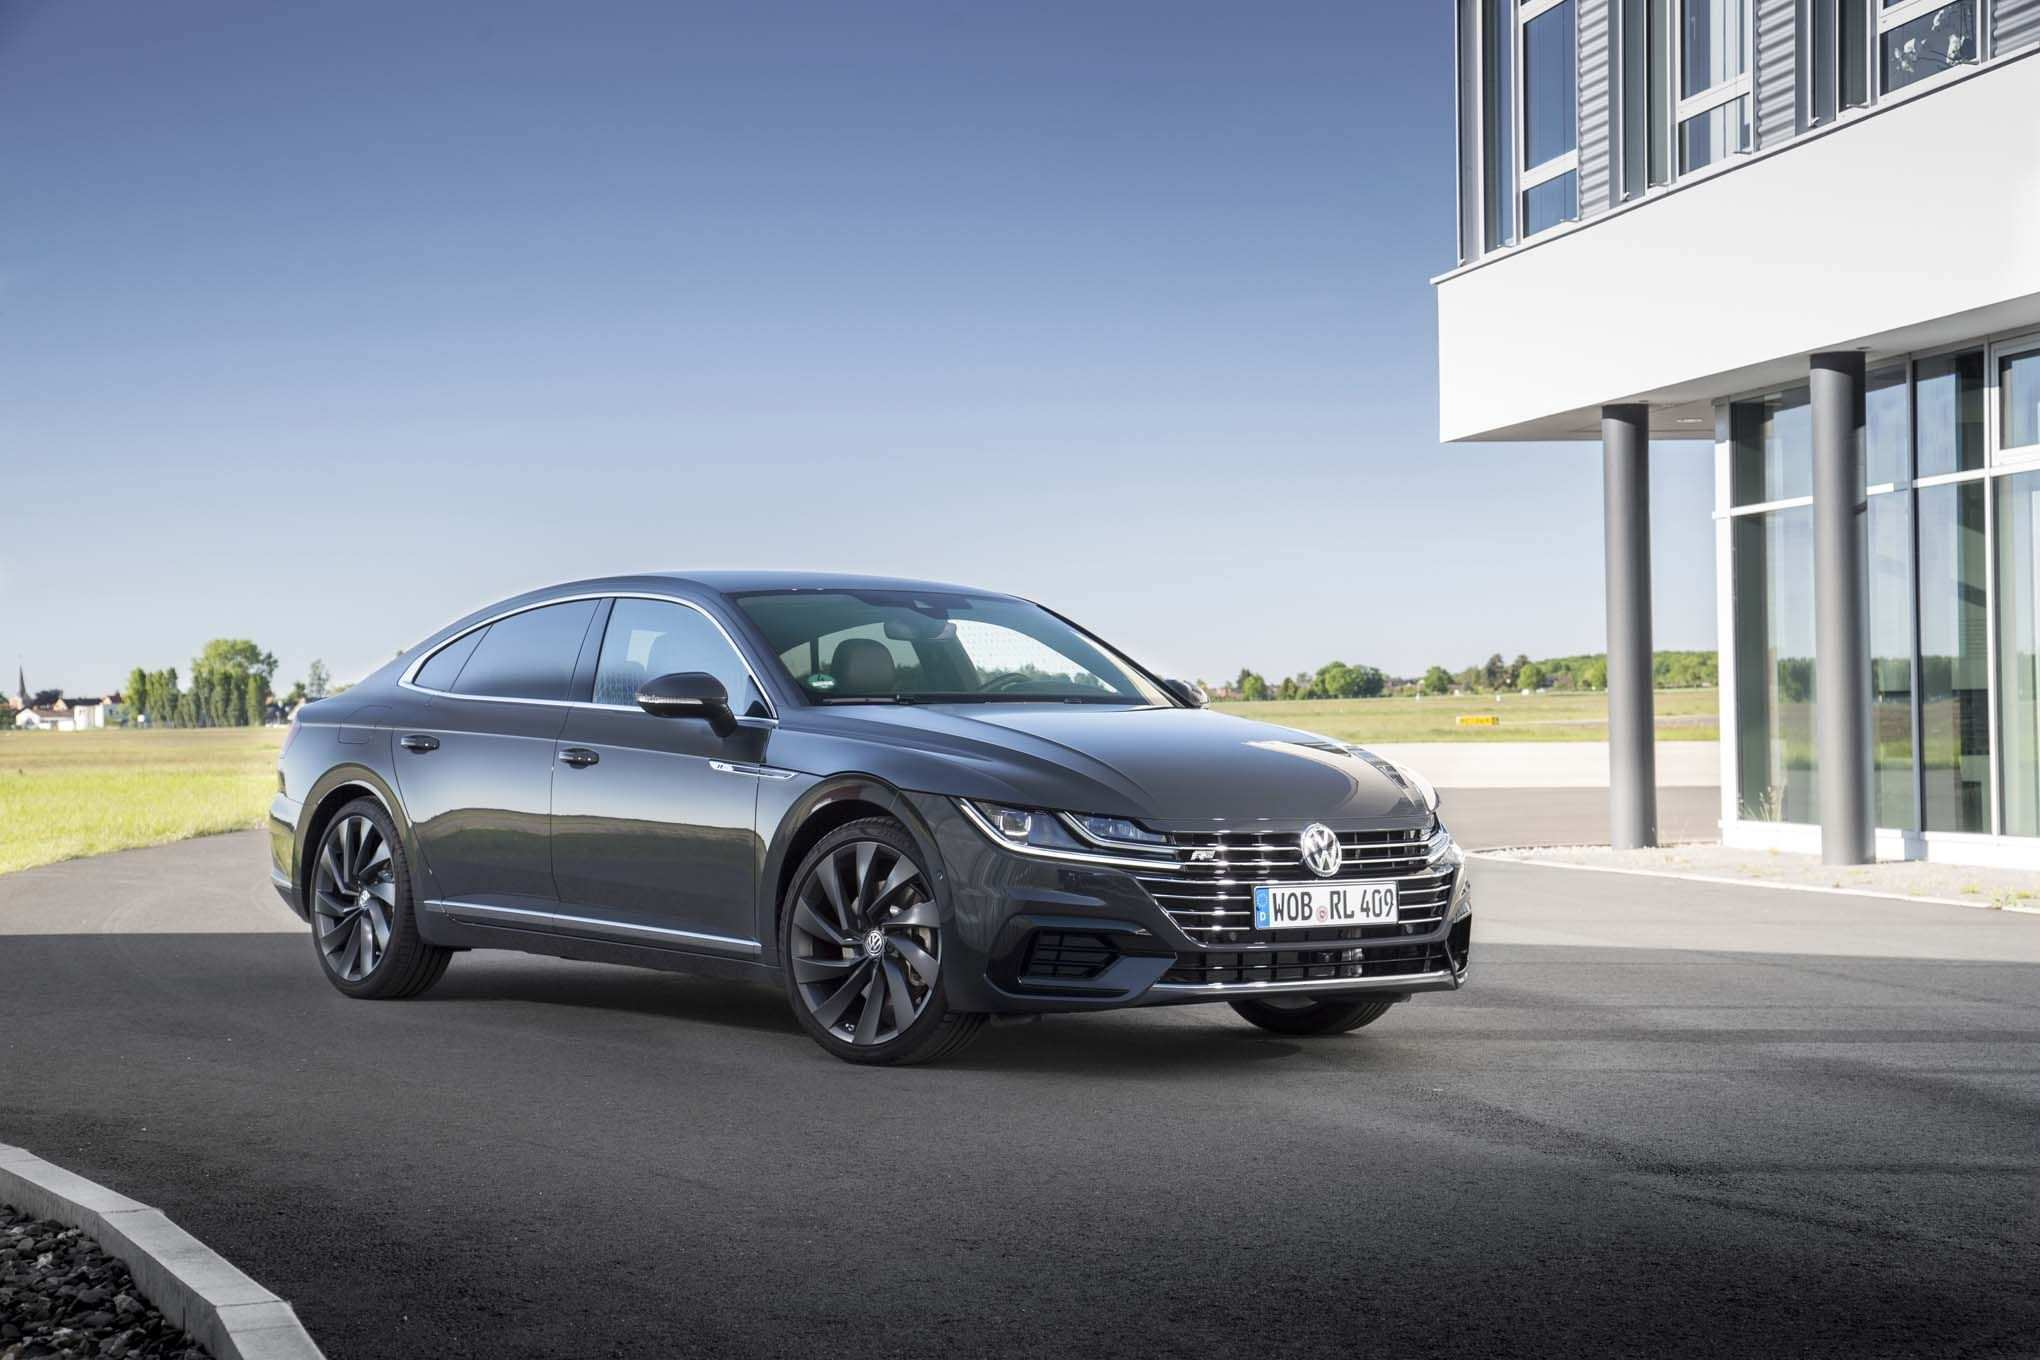 70 Great Volkswagen R Line 2019 Redesign And Concept Pictures with Volkswagen R Line 2019 Redesign And Concept